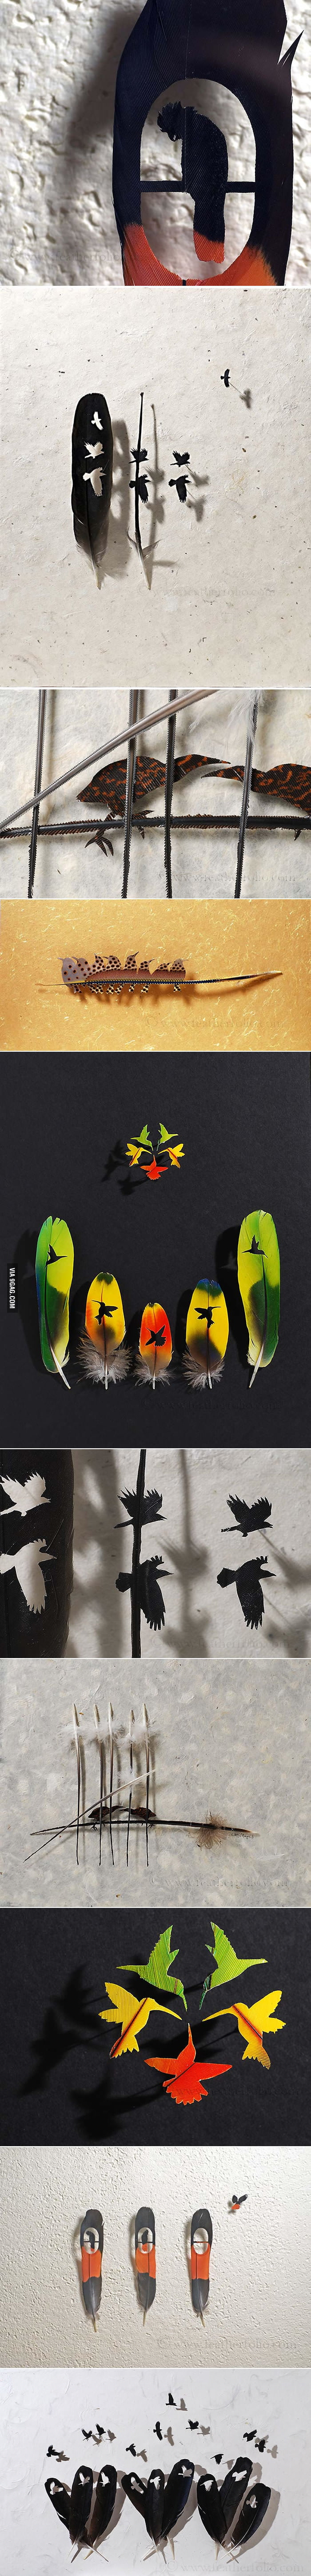 Feather Art.